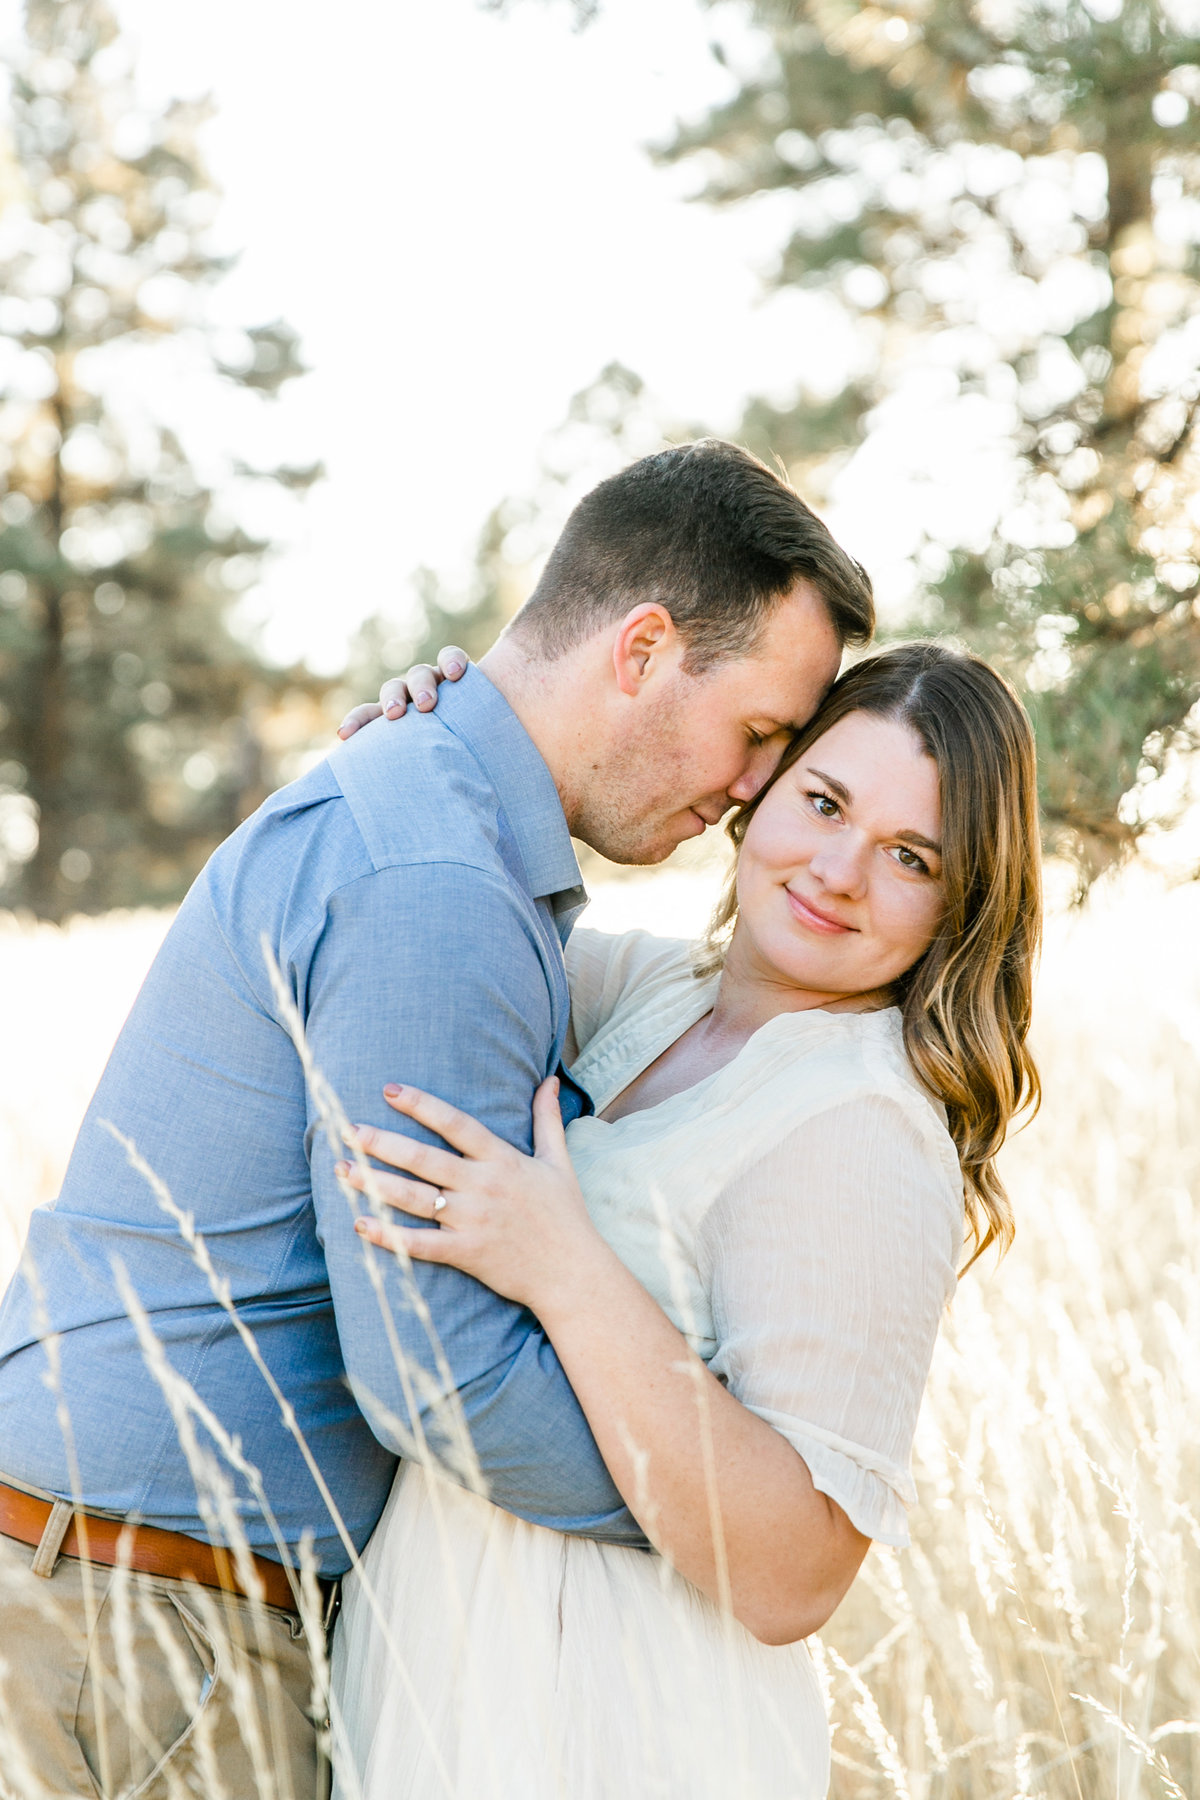 Karlie Colleen Photography - Flagstaff Arizona Engagement Photographer - Britt & Josh -151